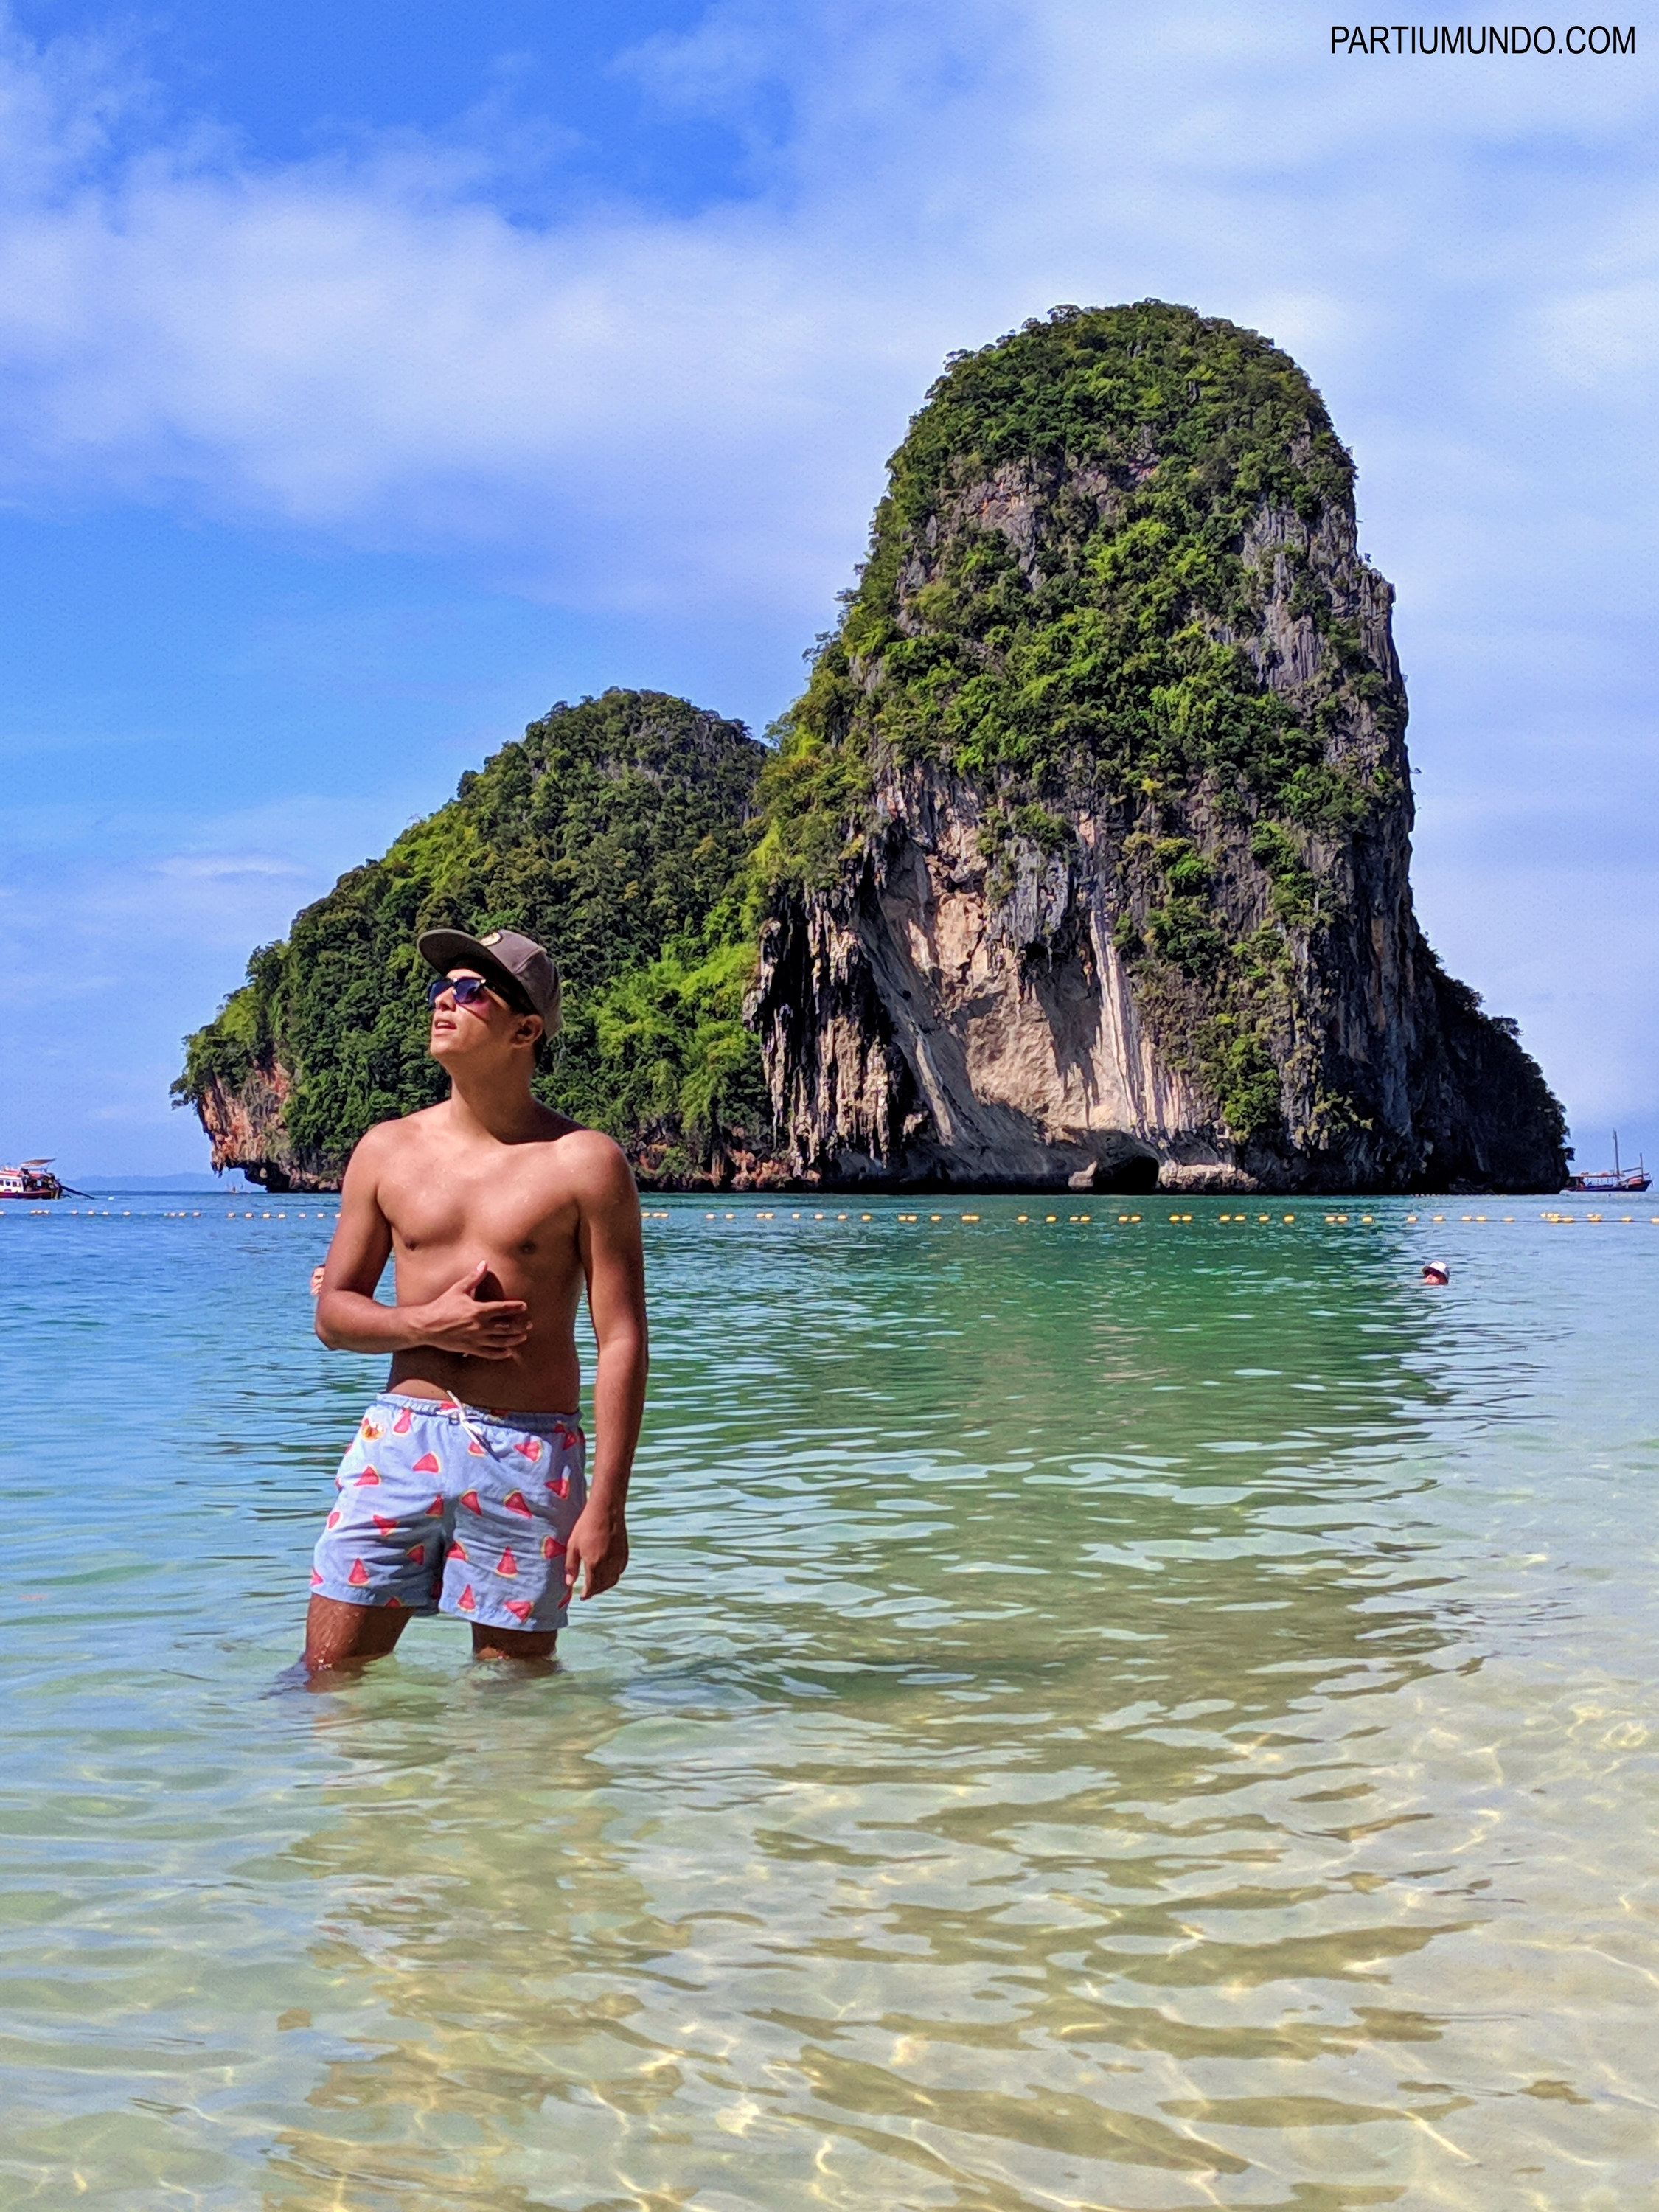 Phra Nang Beach (Railay, Krabi)